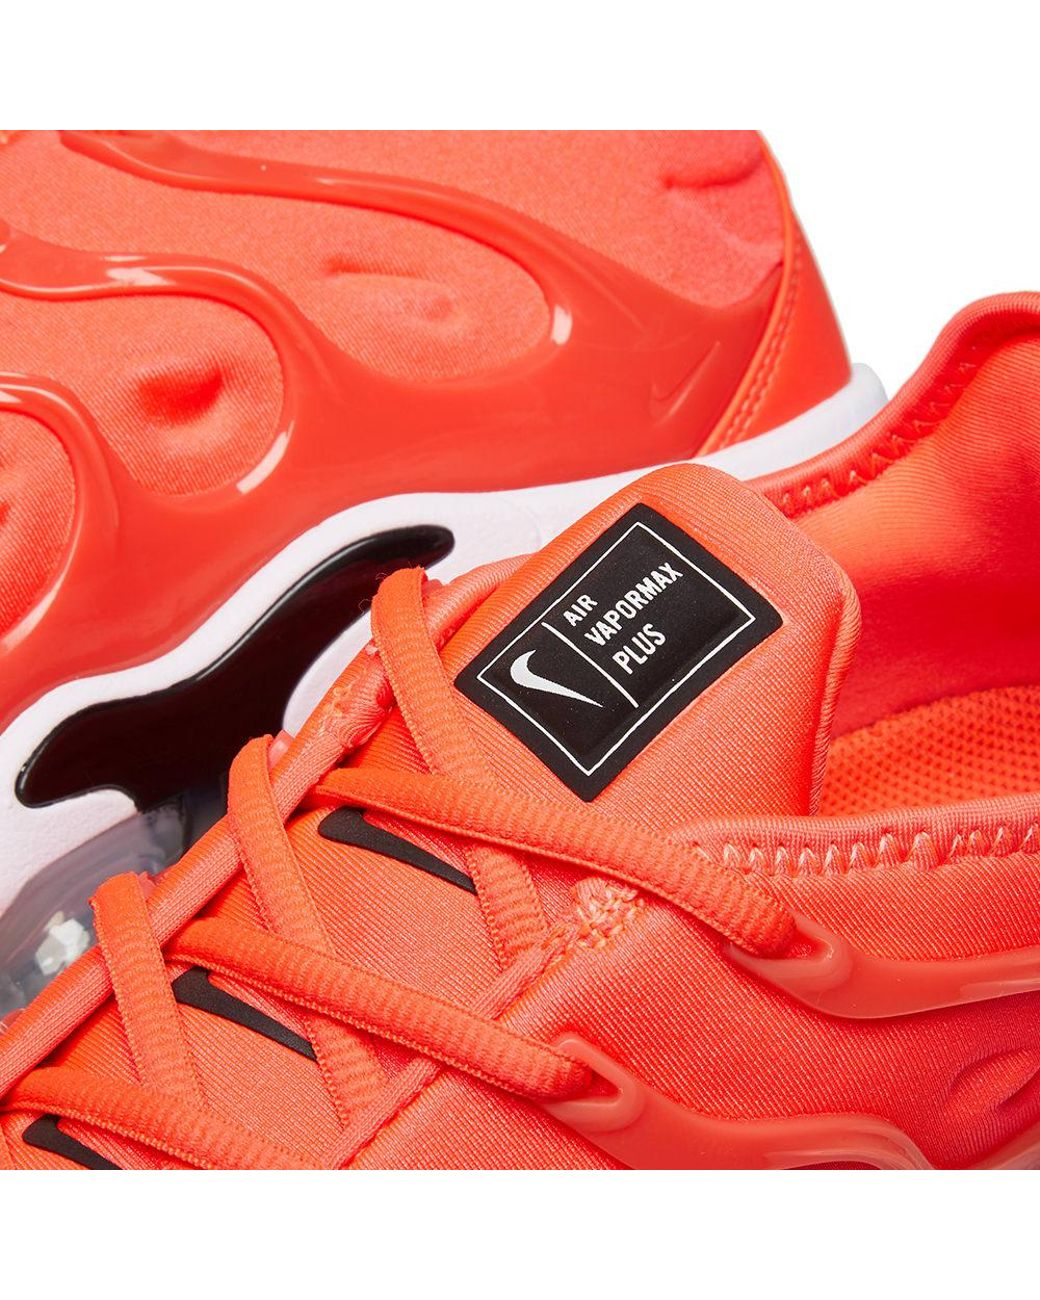 cc55e17ee32 Nike Air Vapormax Plus in Red for Men - Save 40% - Lyst